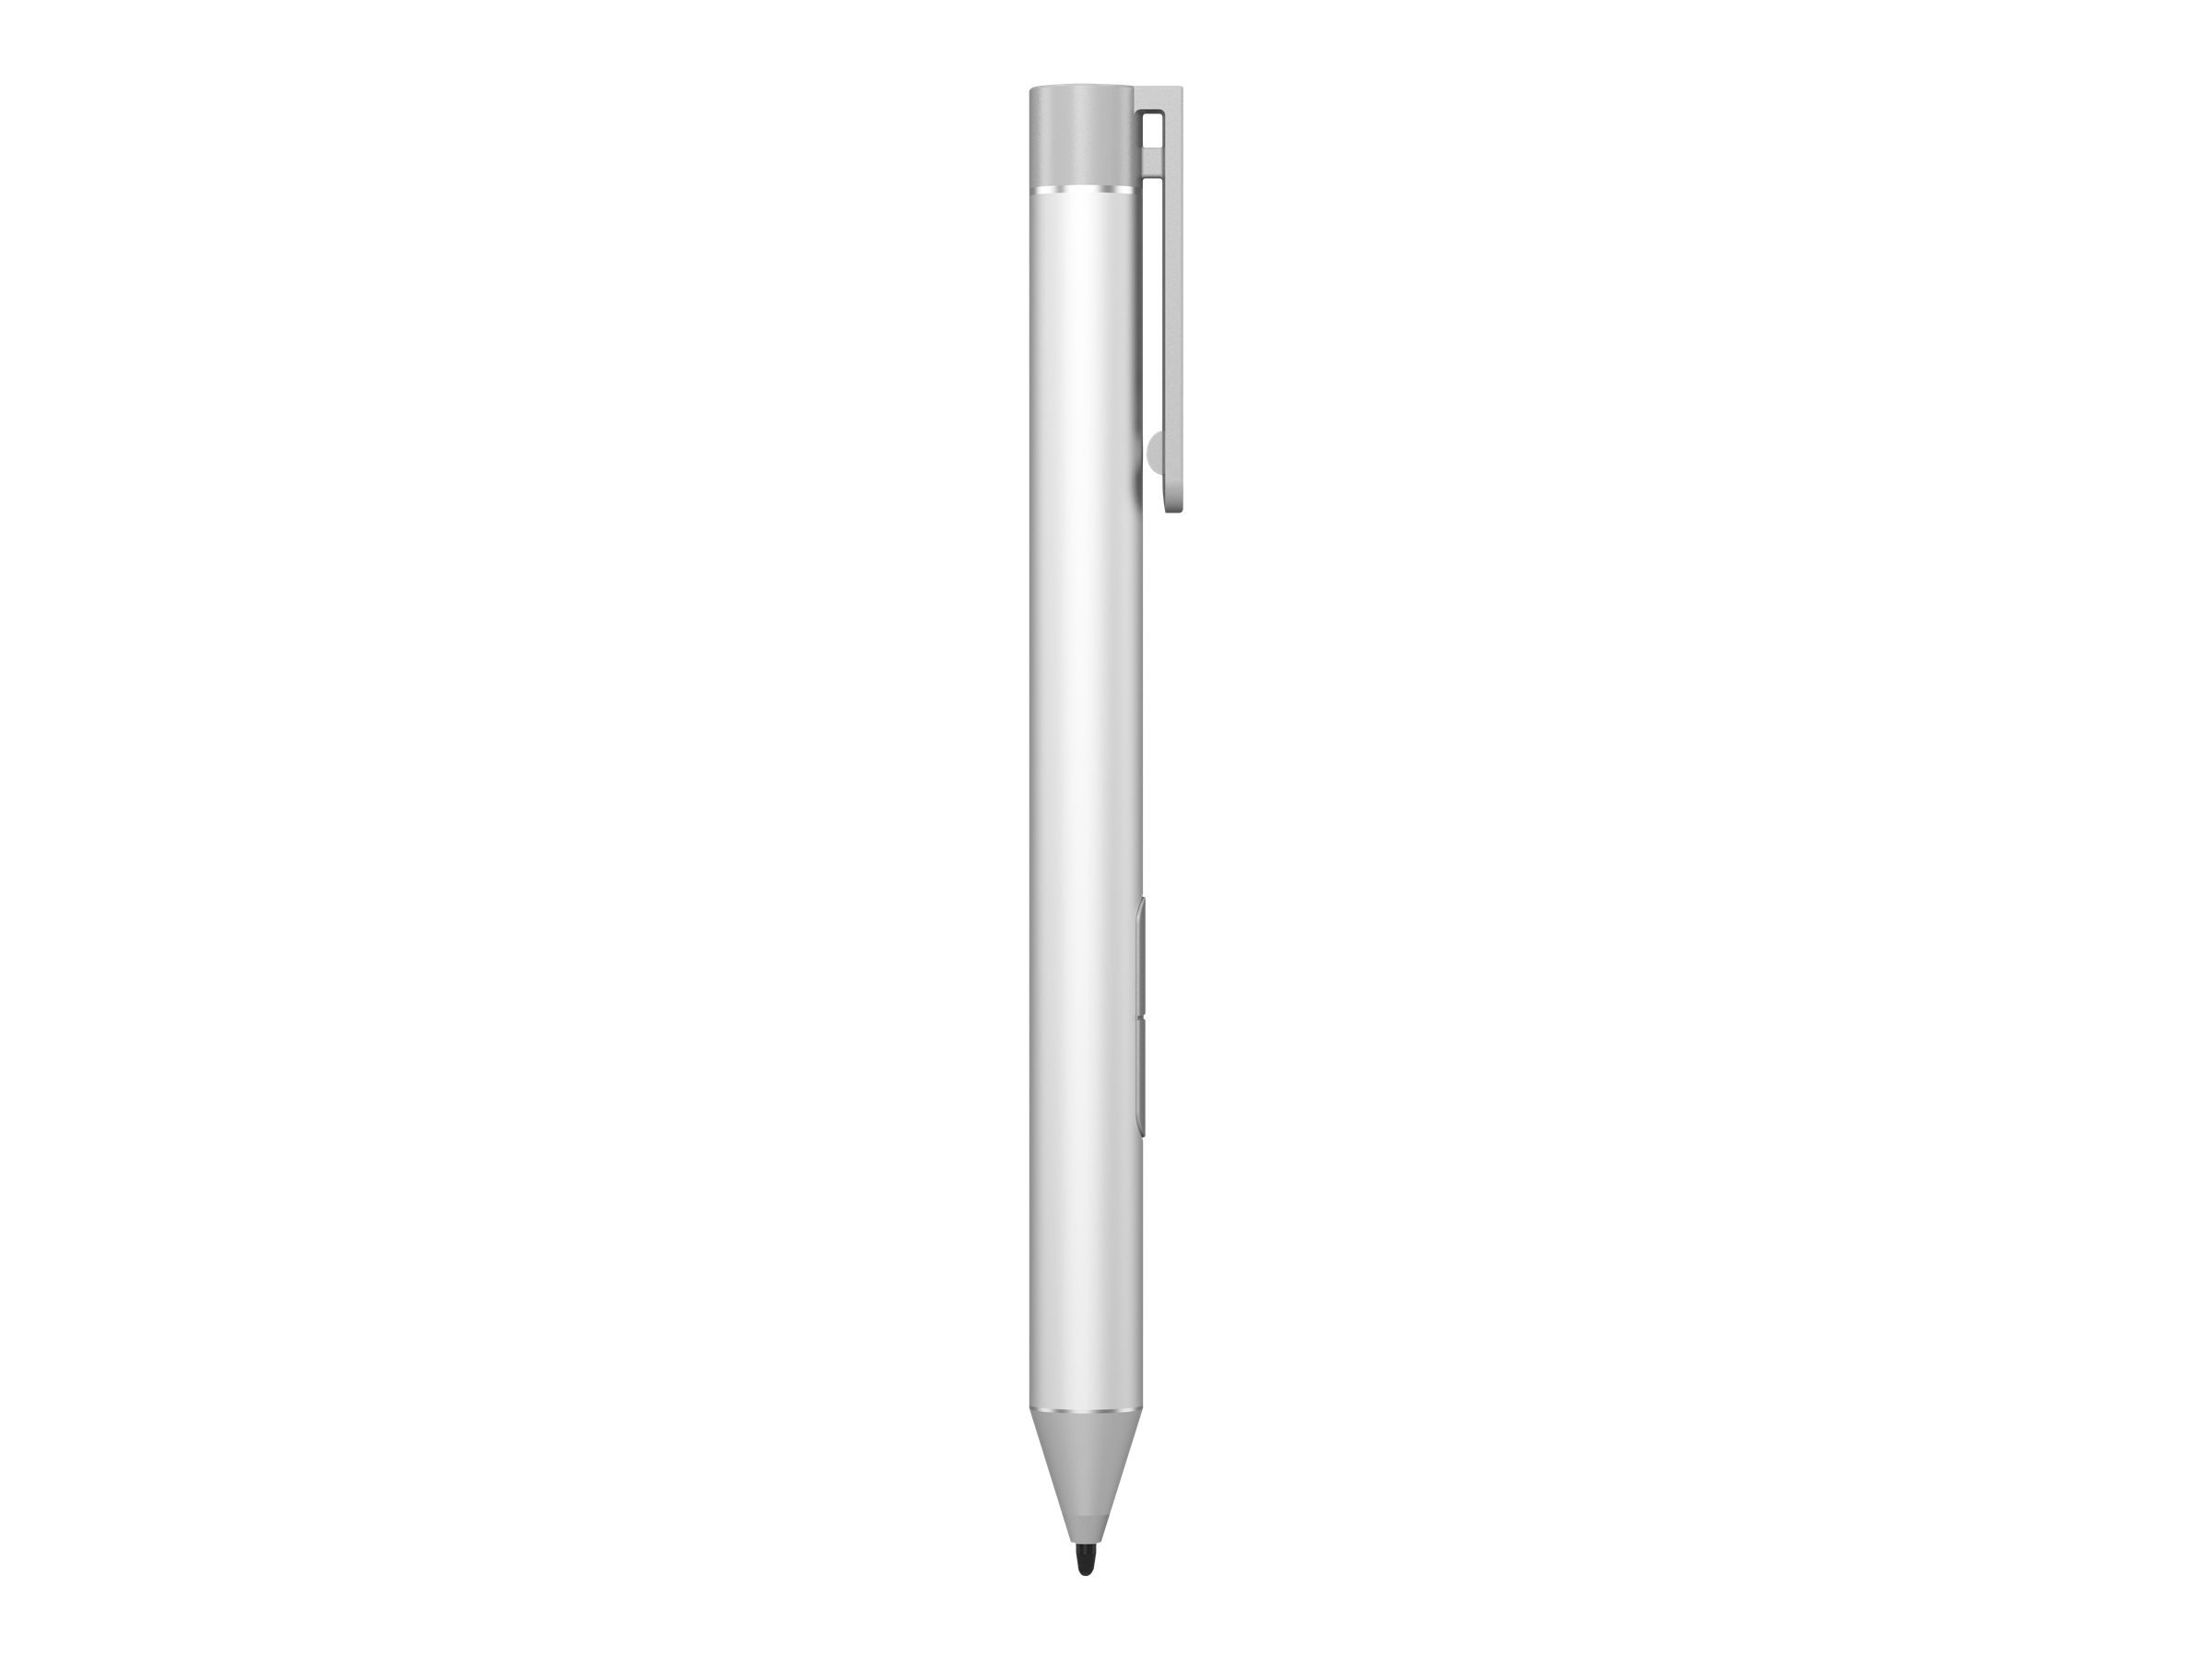 HP Active Pen - Digital Pen - Natural Silver - Smart Buy by HP